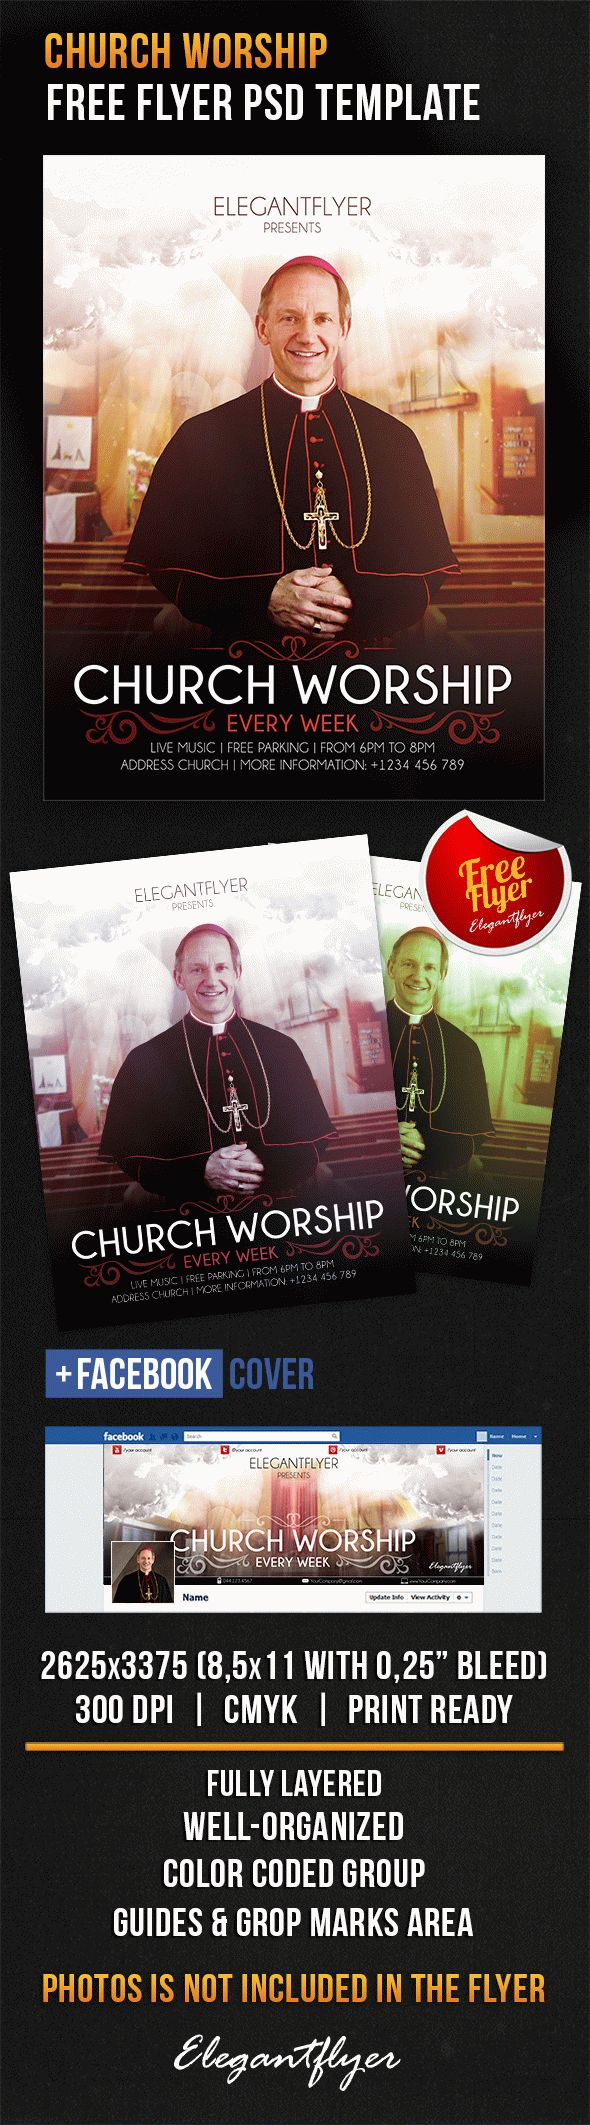 Church Worship U2013 Free Flyer PSD Template